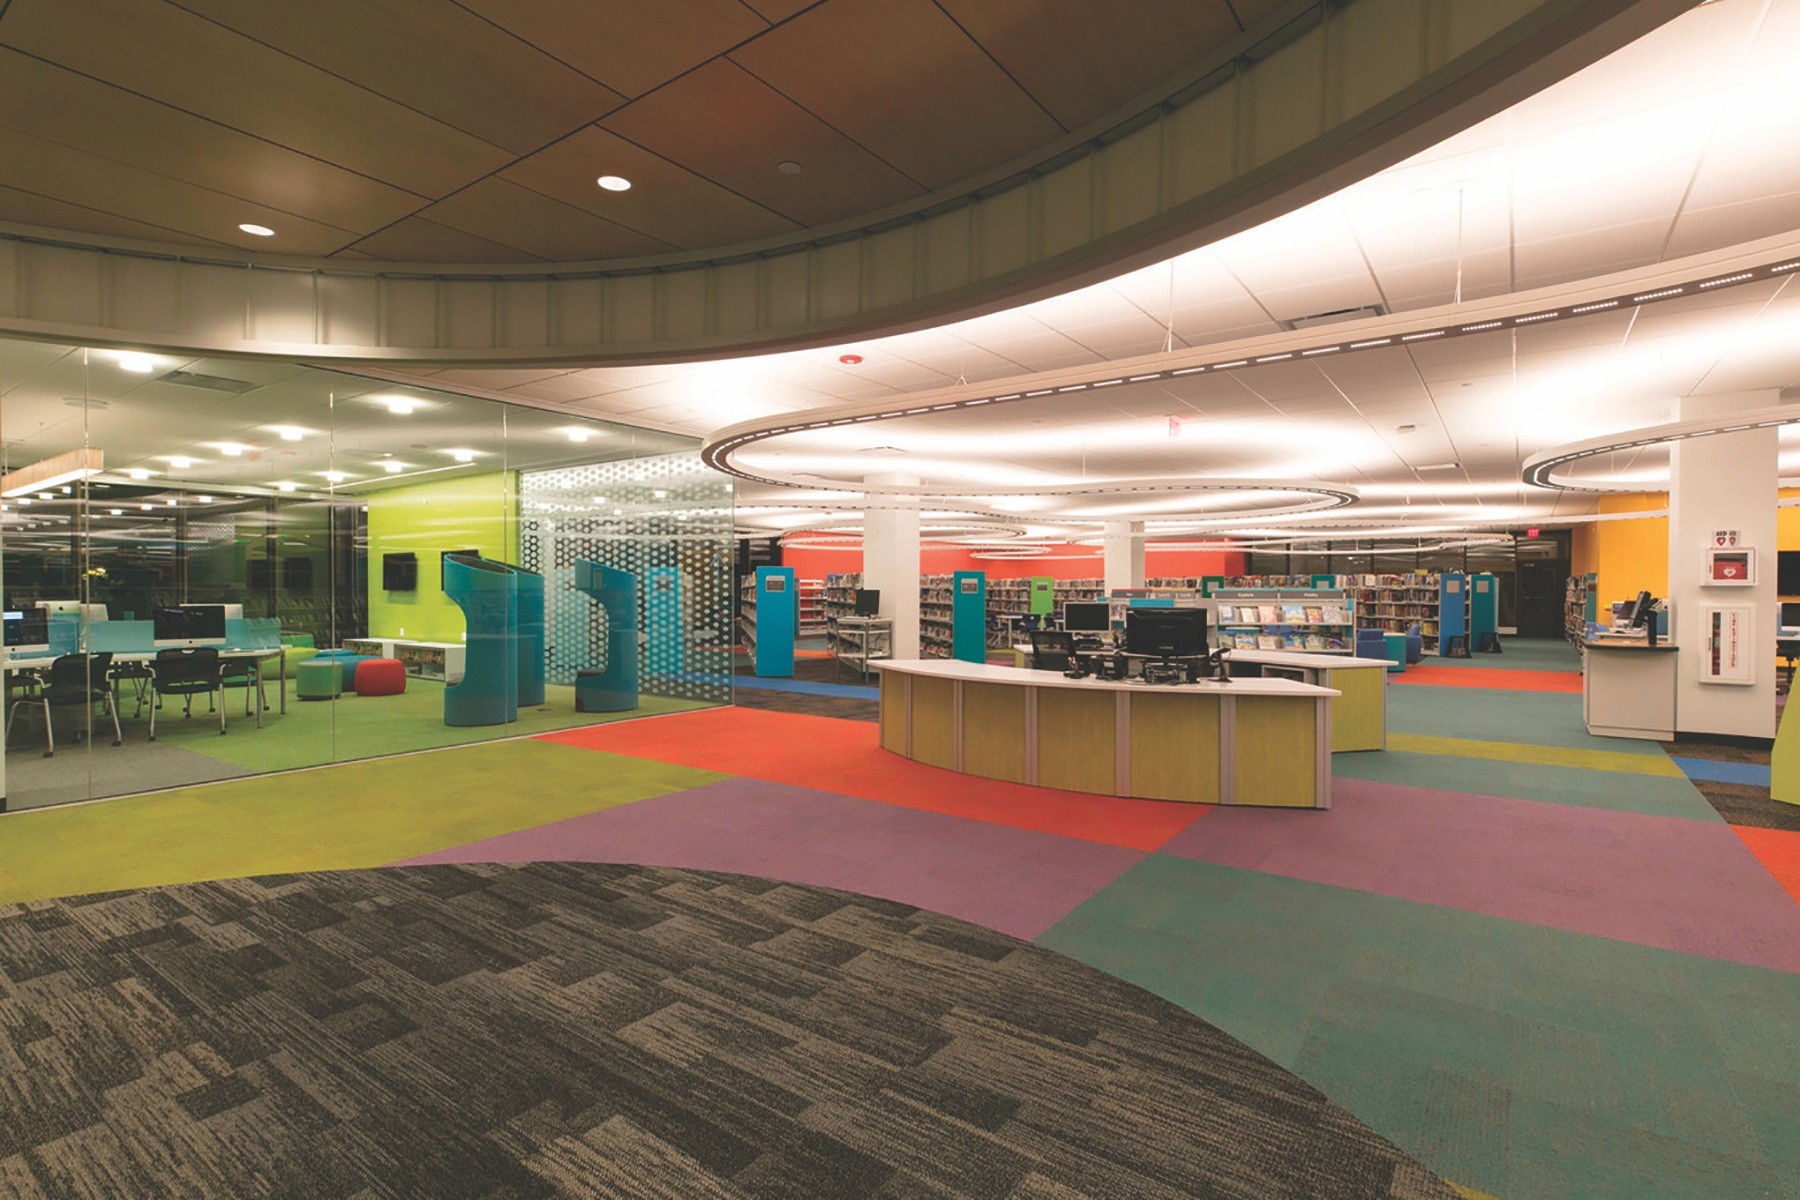 Indian trails library in Wheeling, Illinois